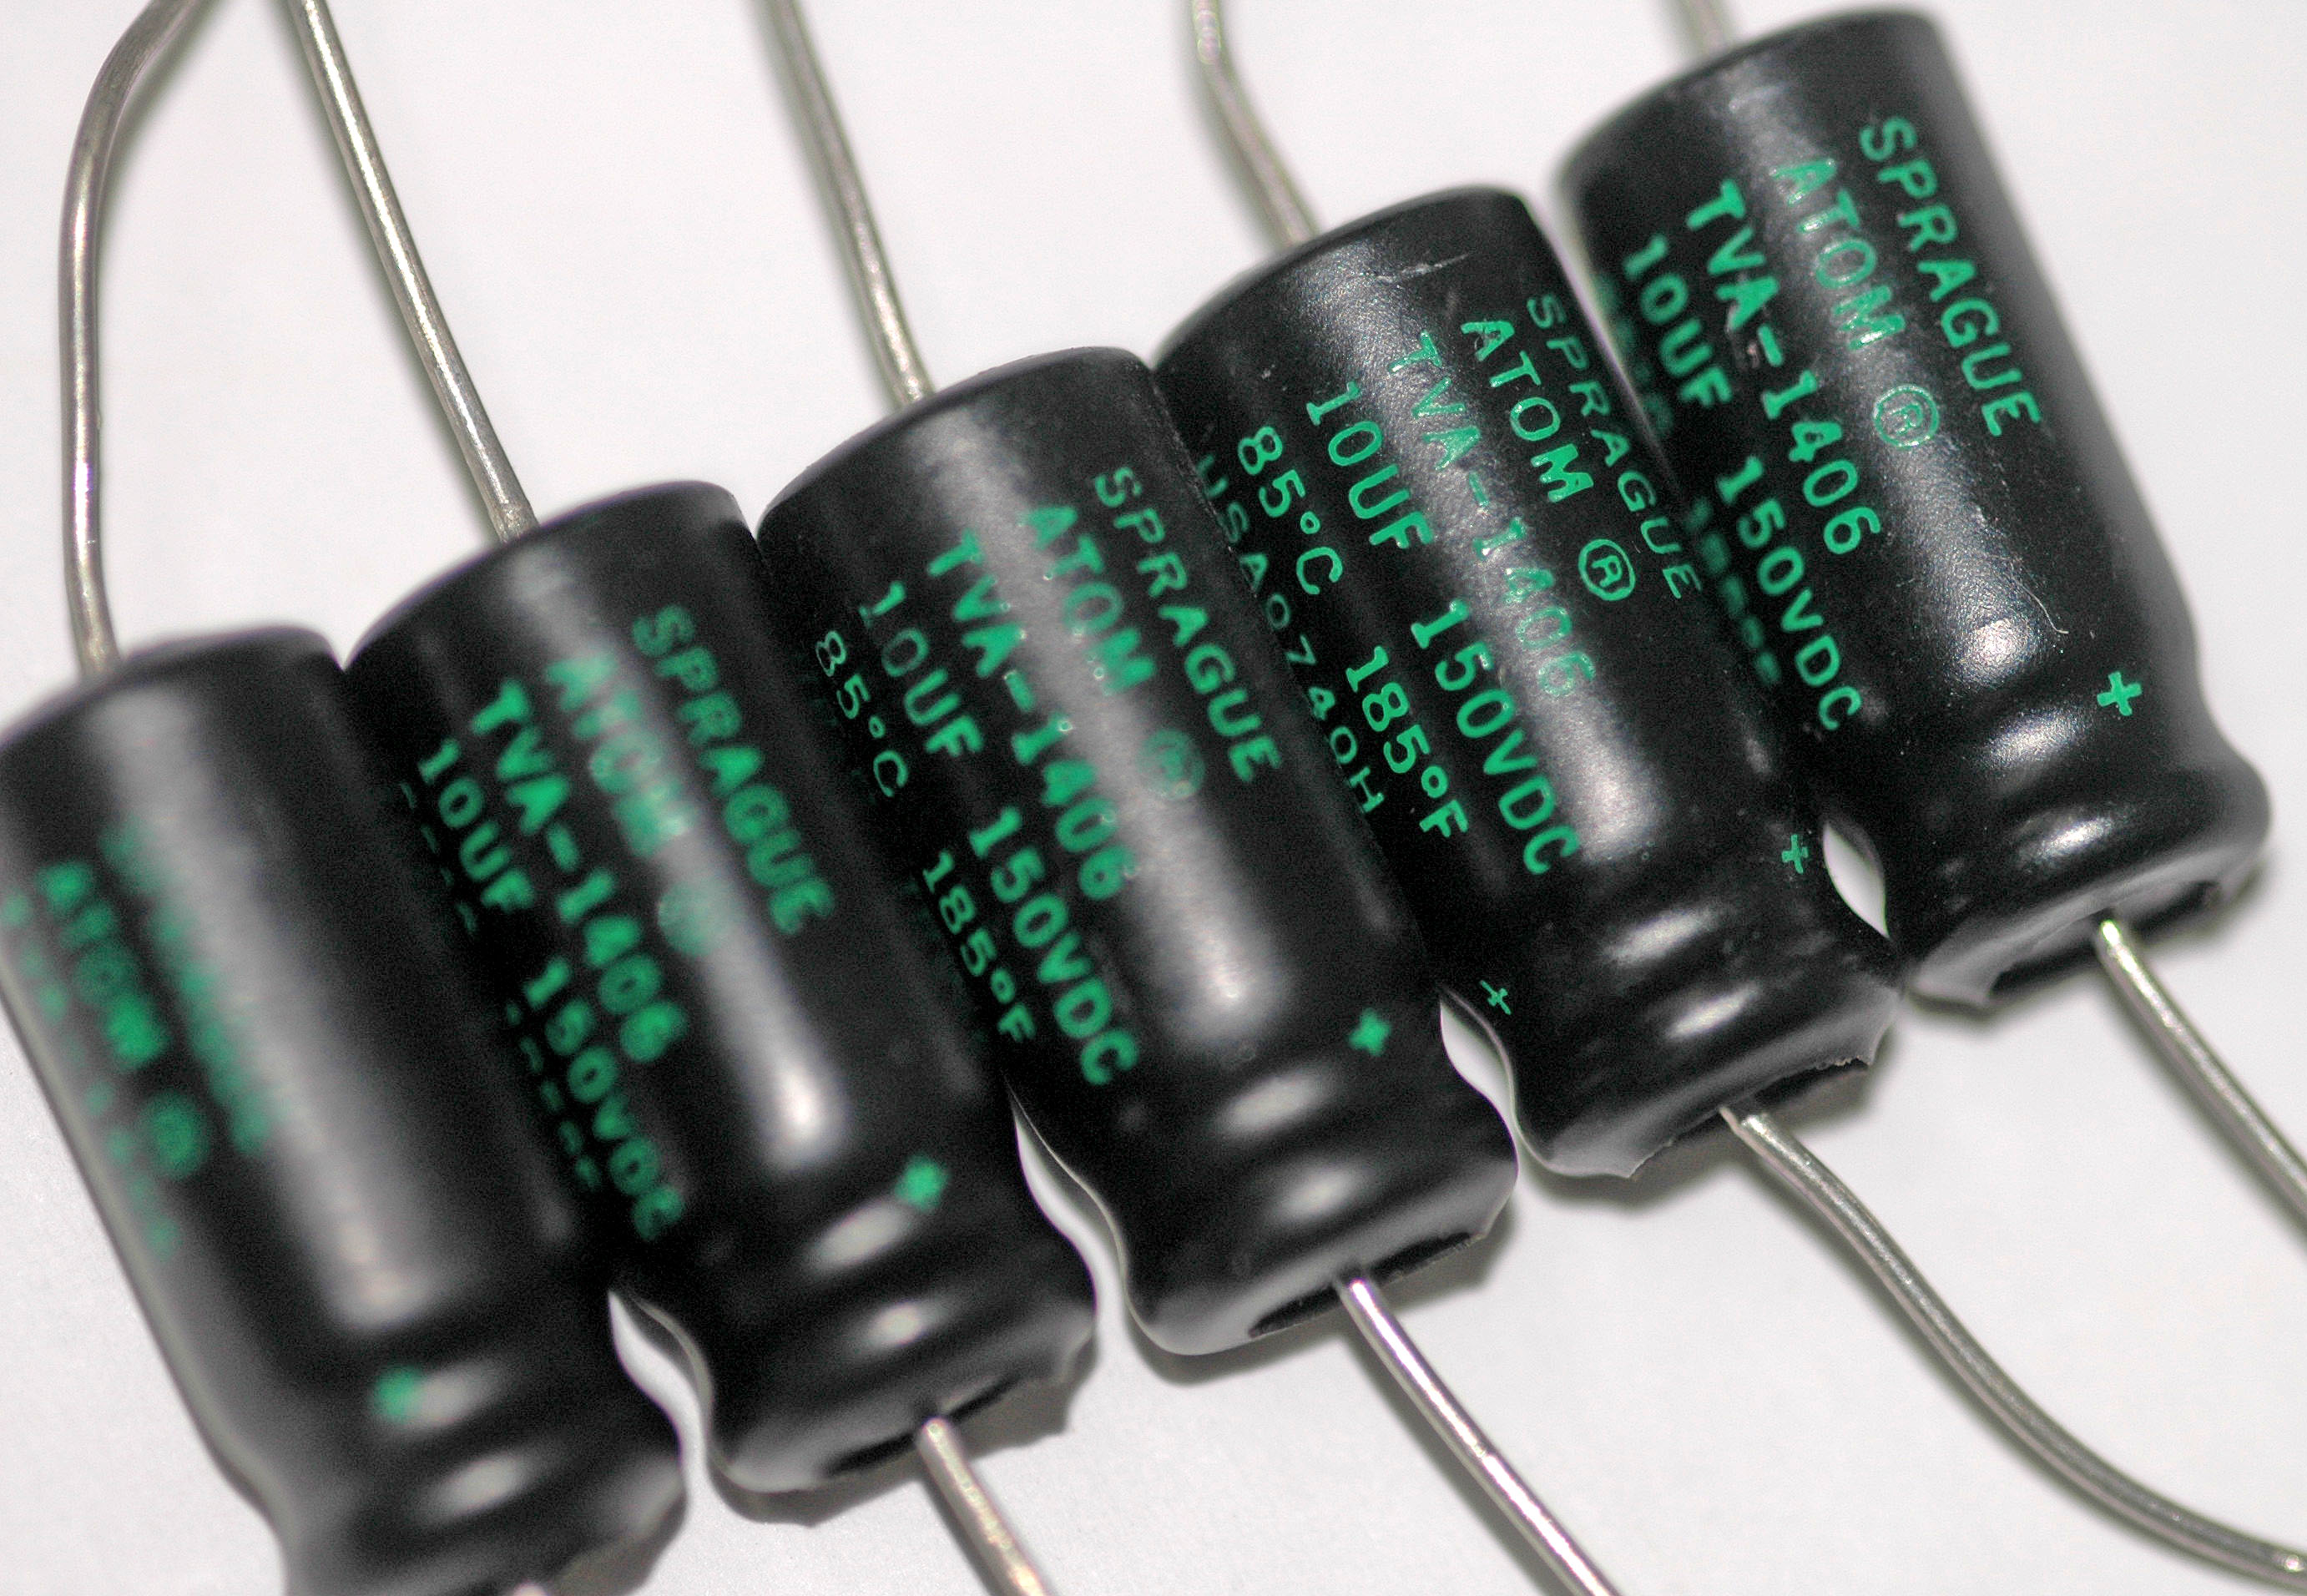 axial-electrolytic-capacitors.jpg